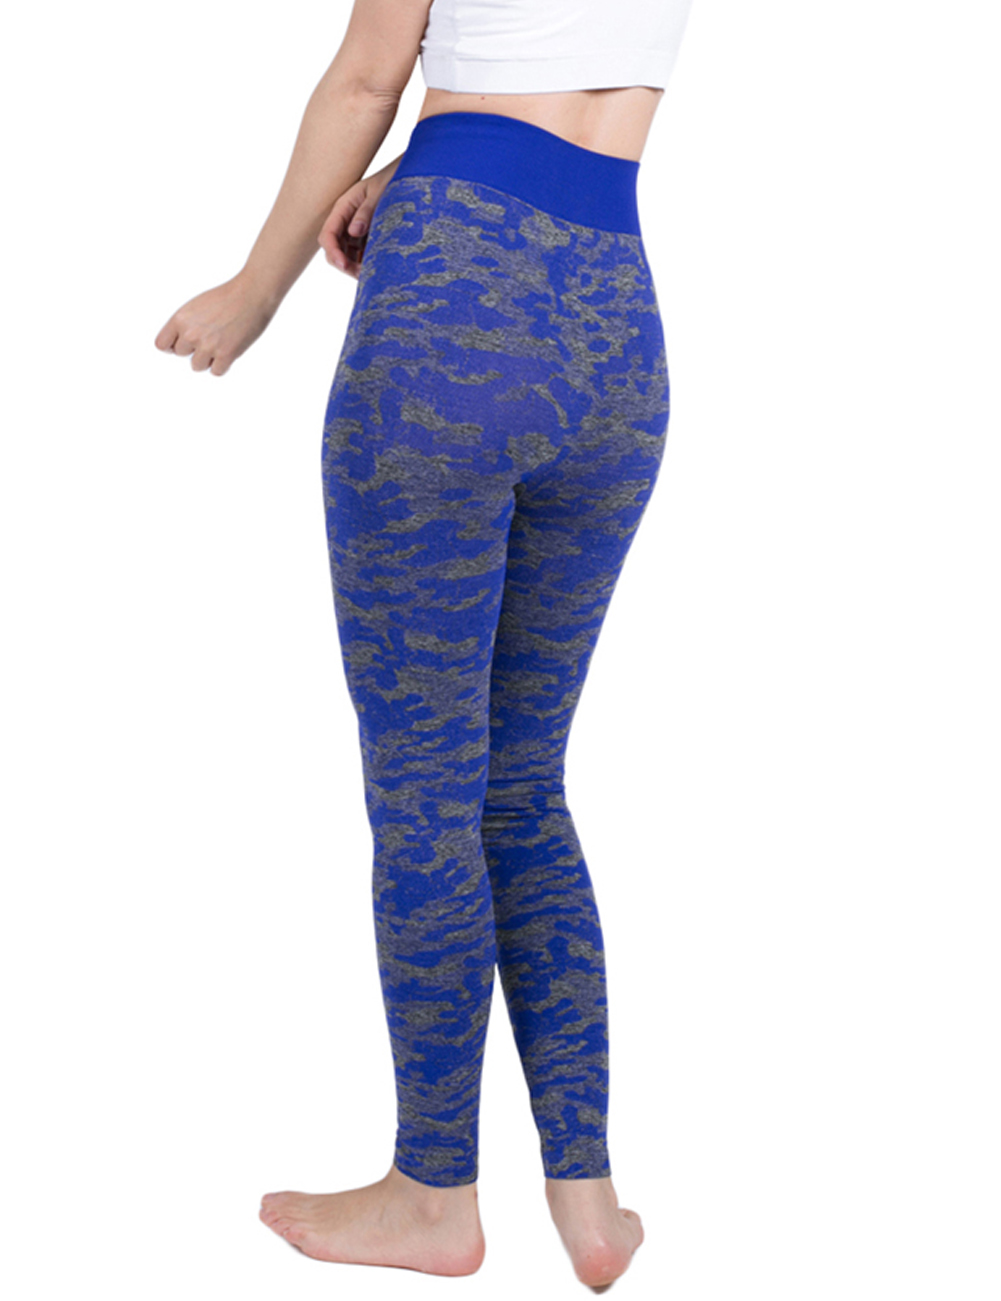 //cdn.affectcloud.com/hexinfashion/upload/imgs/Sportswear/Yoga_Legging/H180115-BU05/H180115-BU05-201911055dc145521fd78.jpg